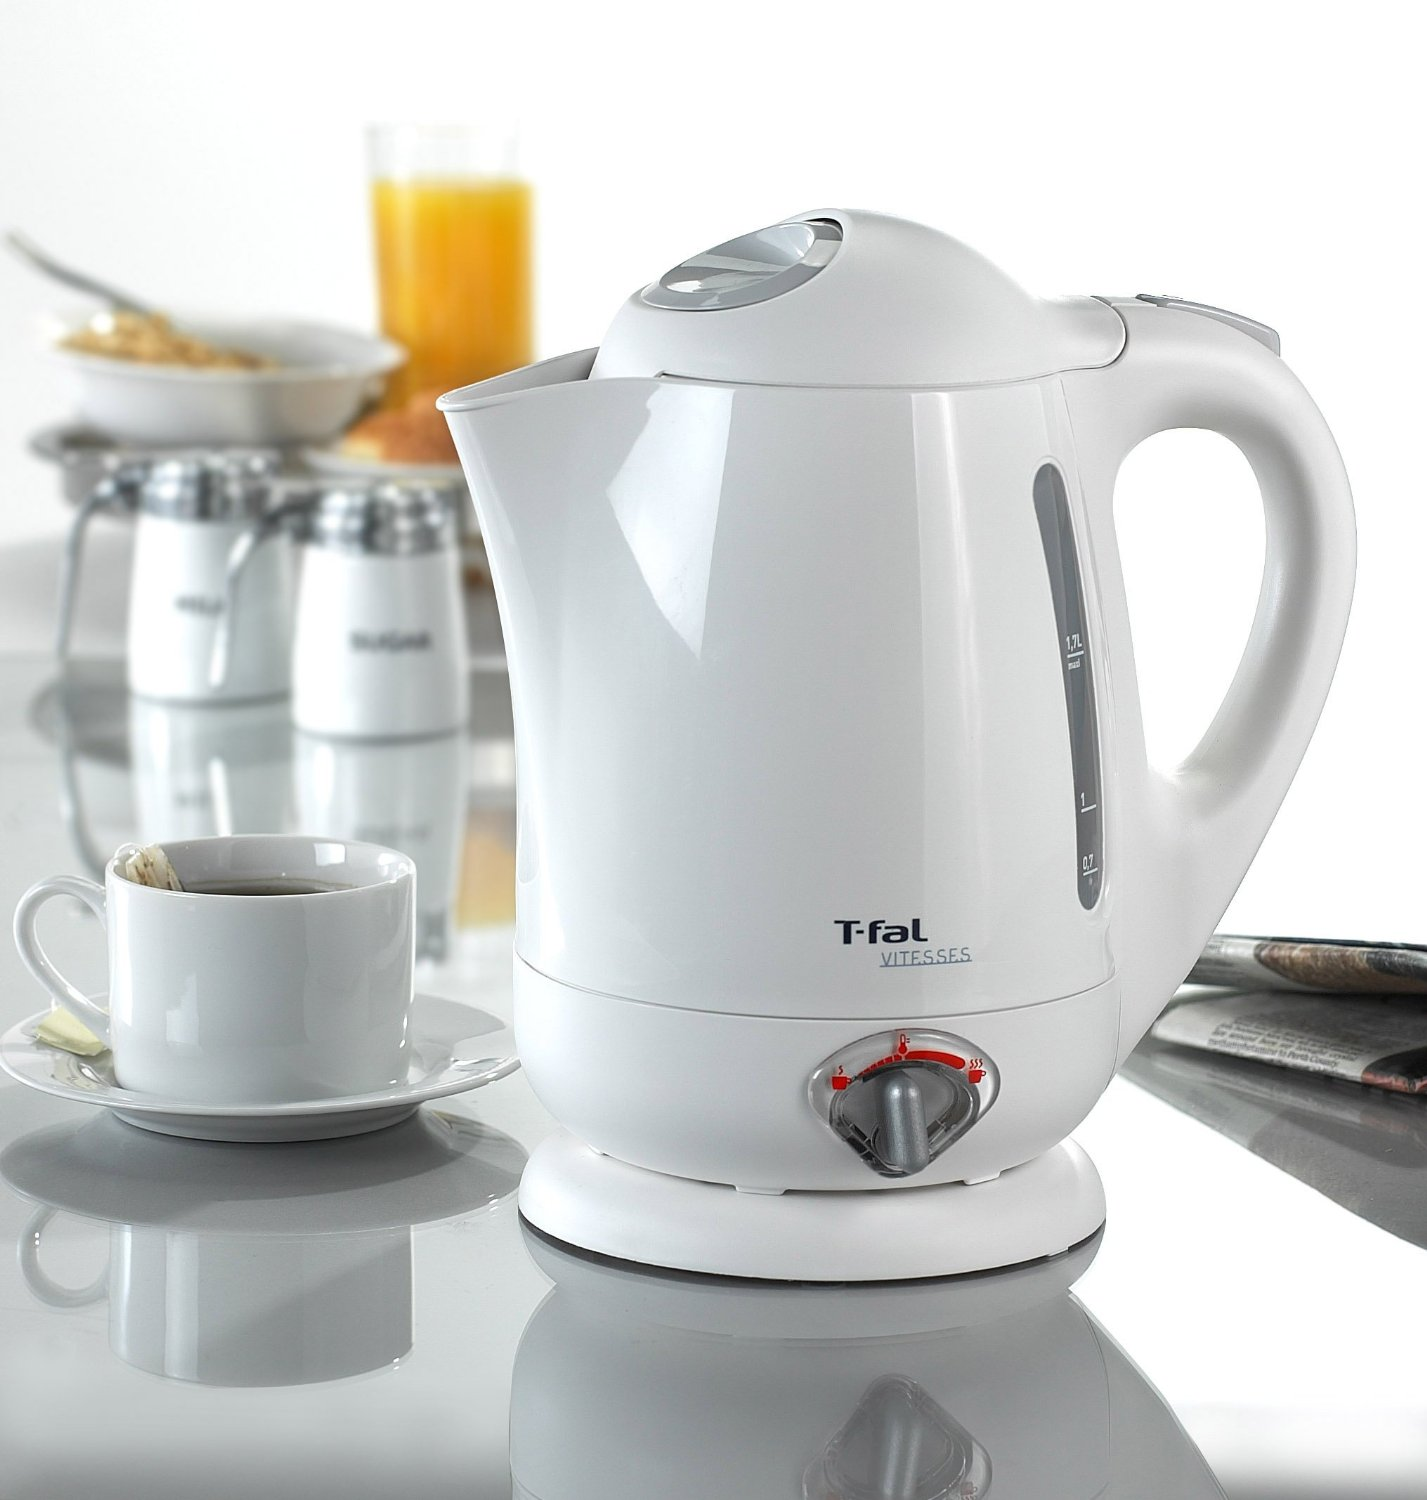 T-fal BF6520 Vitesses 1.7-Liter Electric Kettle Review